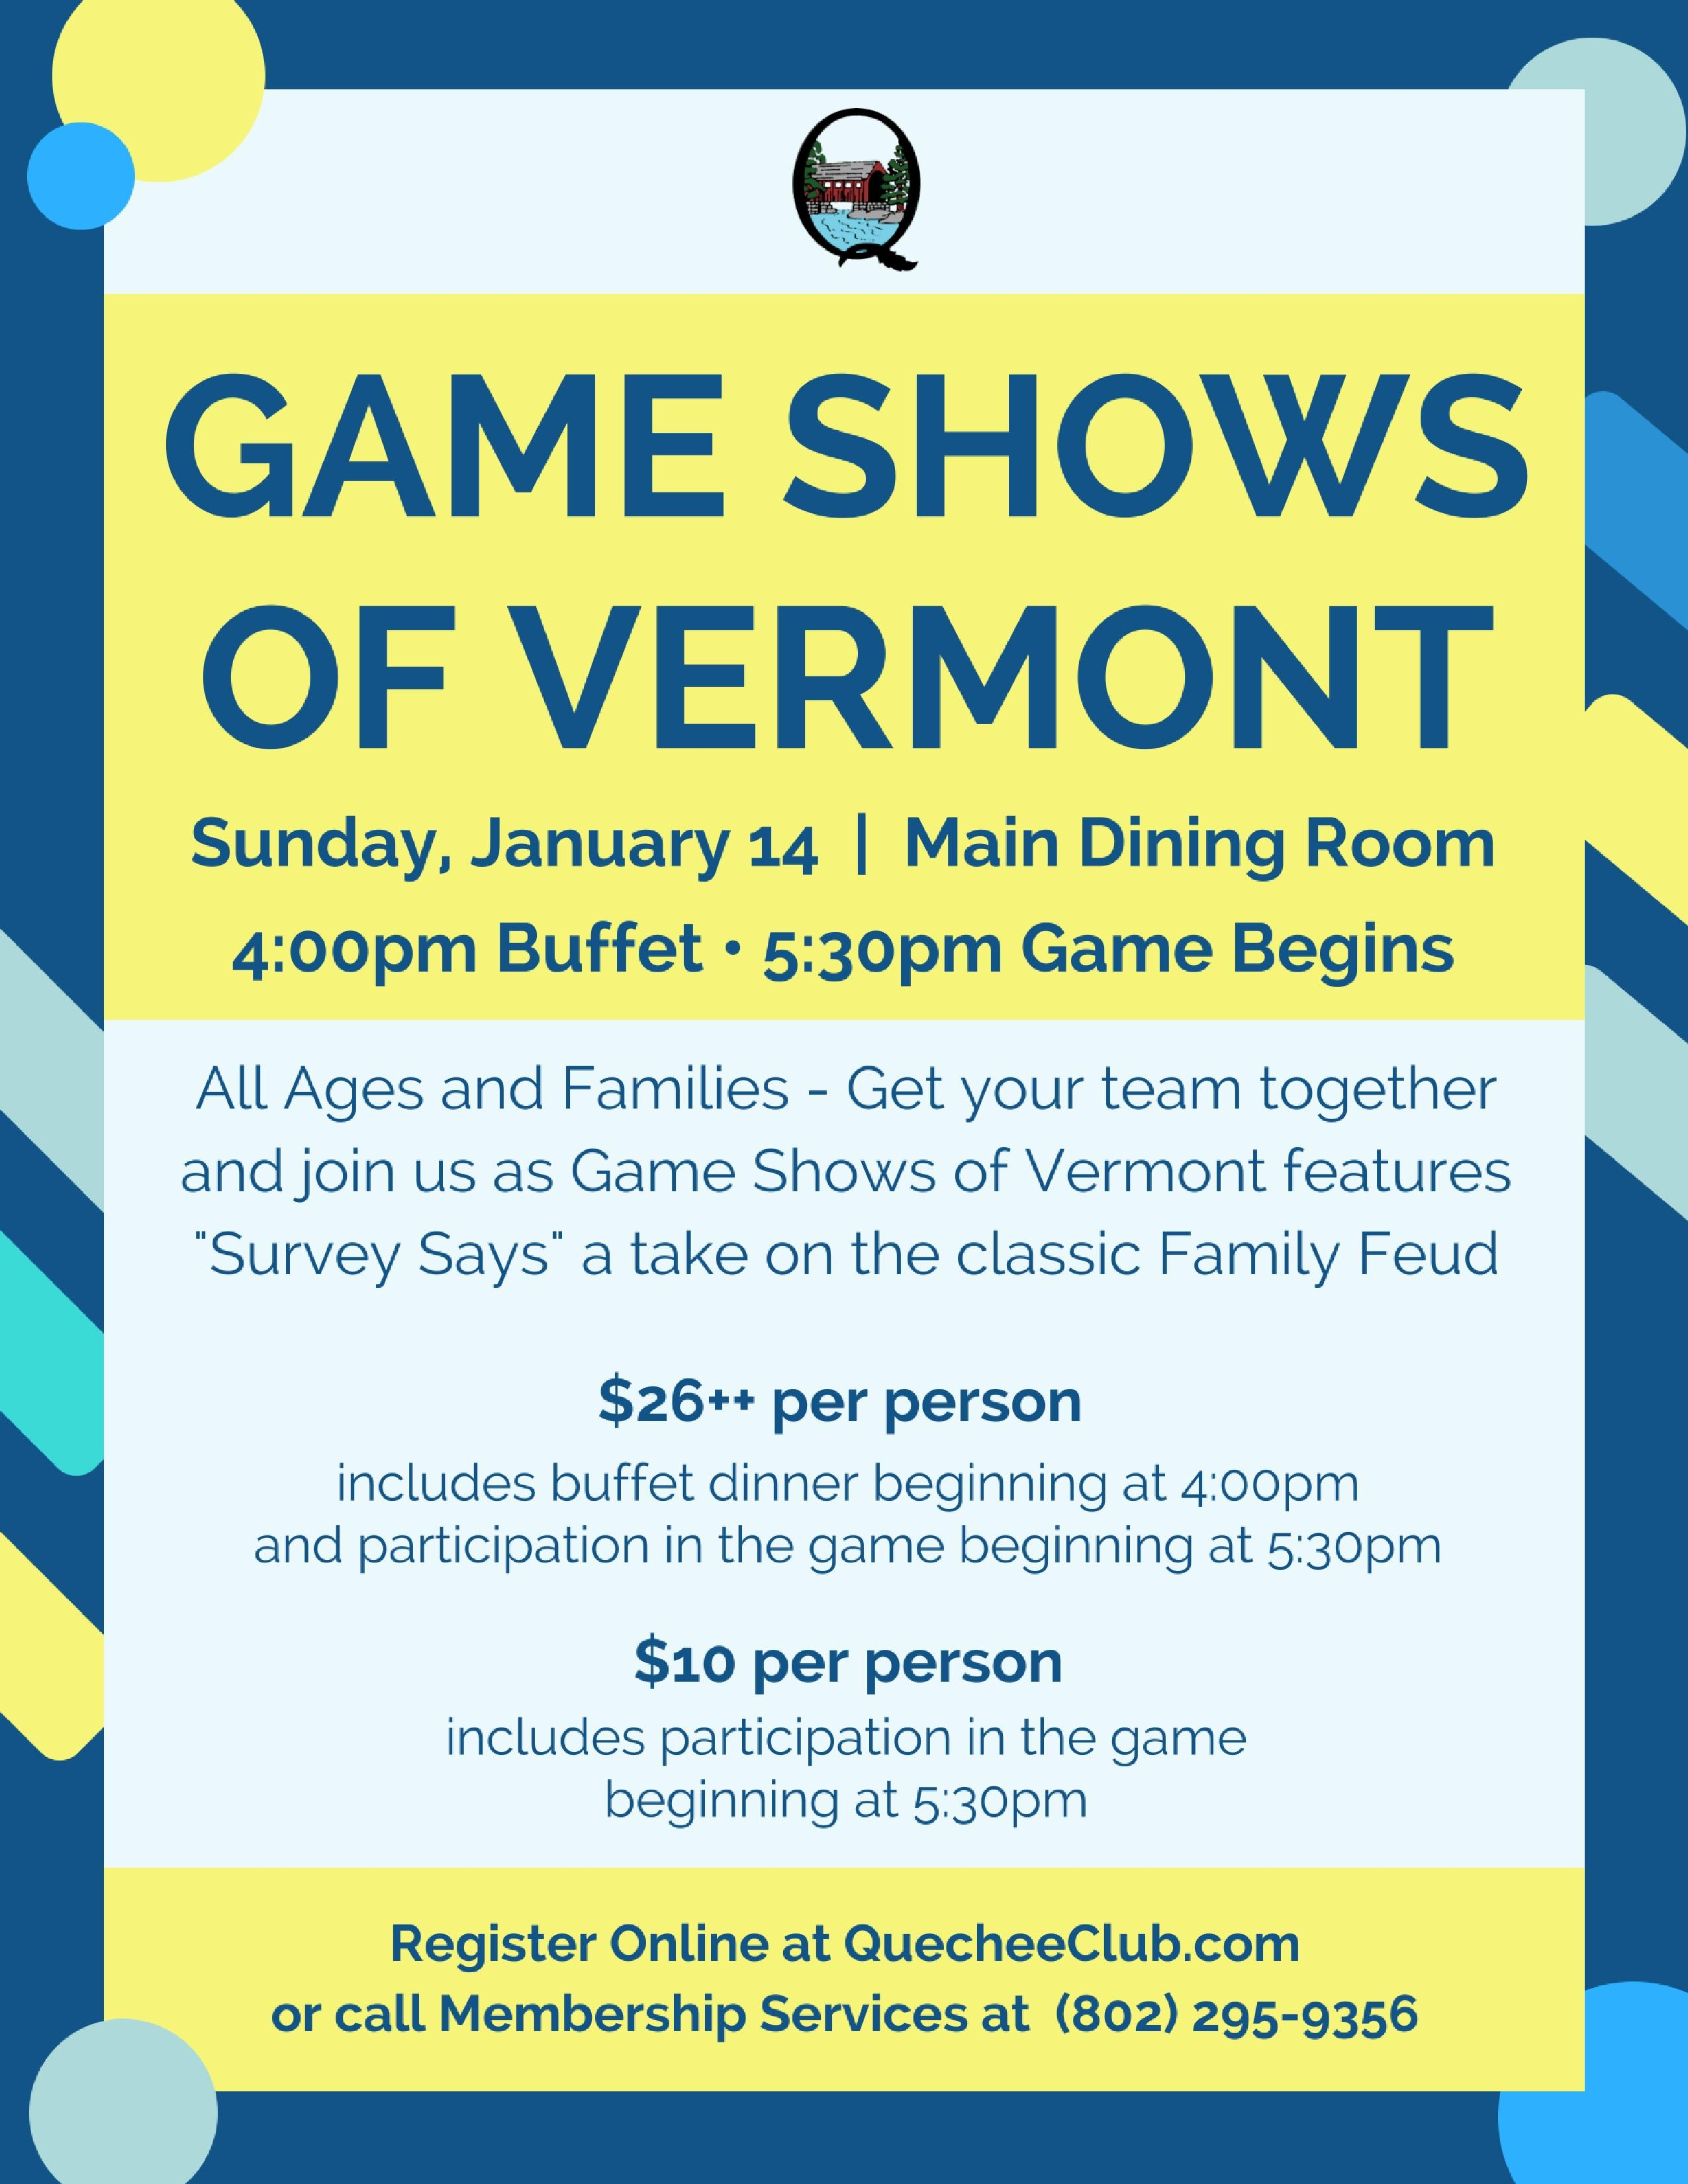 Game Shows of Vermont - Blogs - The Quechee Club